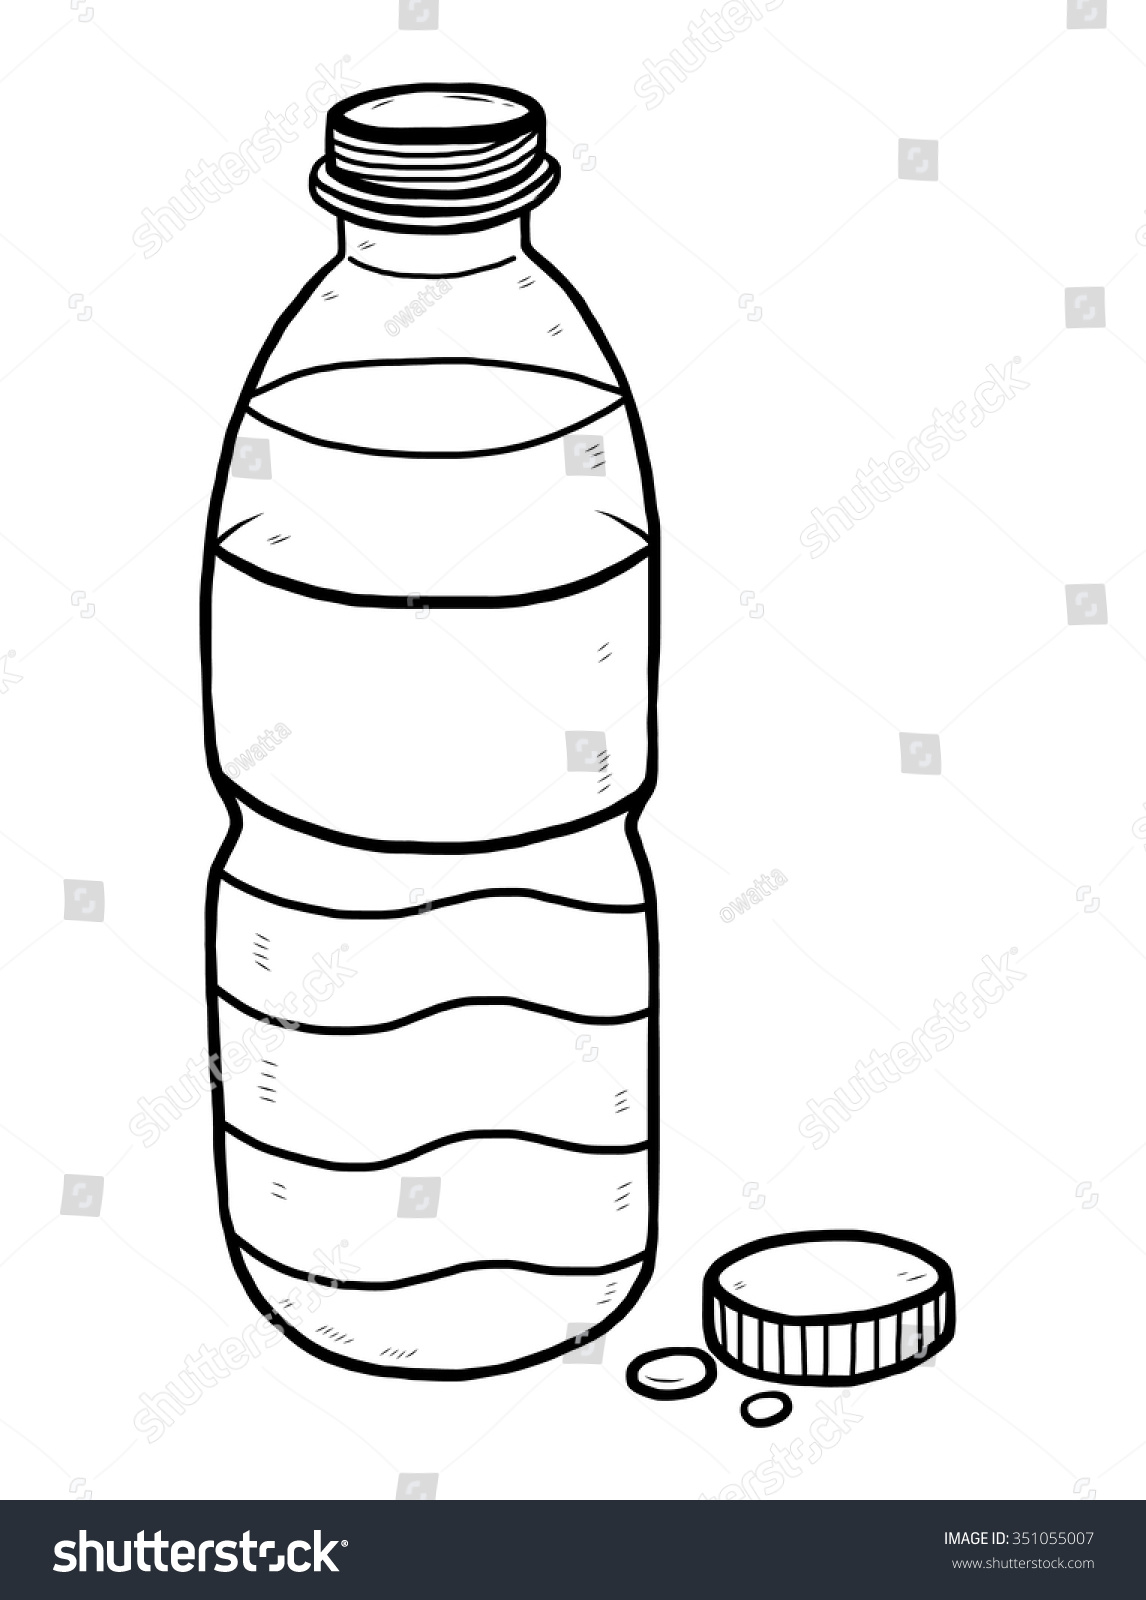 royalty free water bottle cartoon vector and 351055007 stock